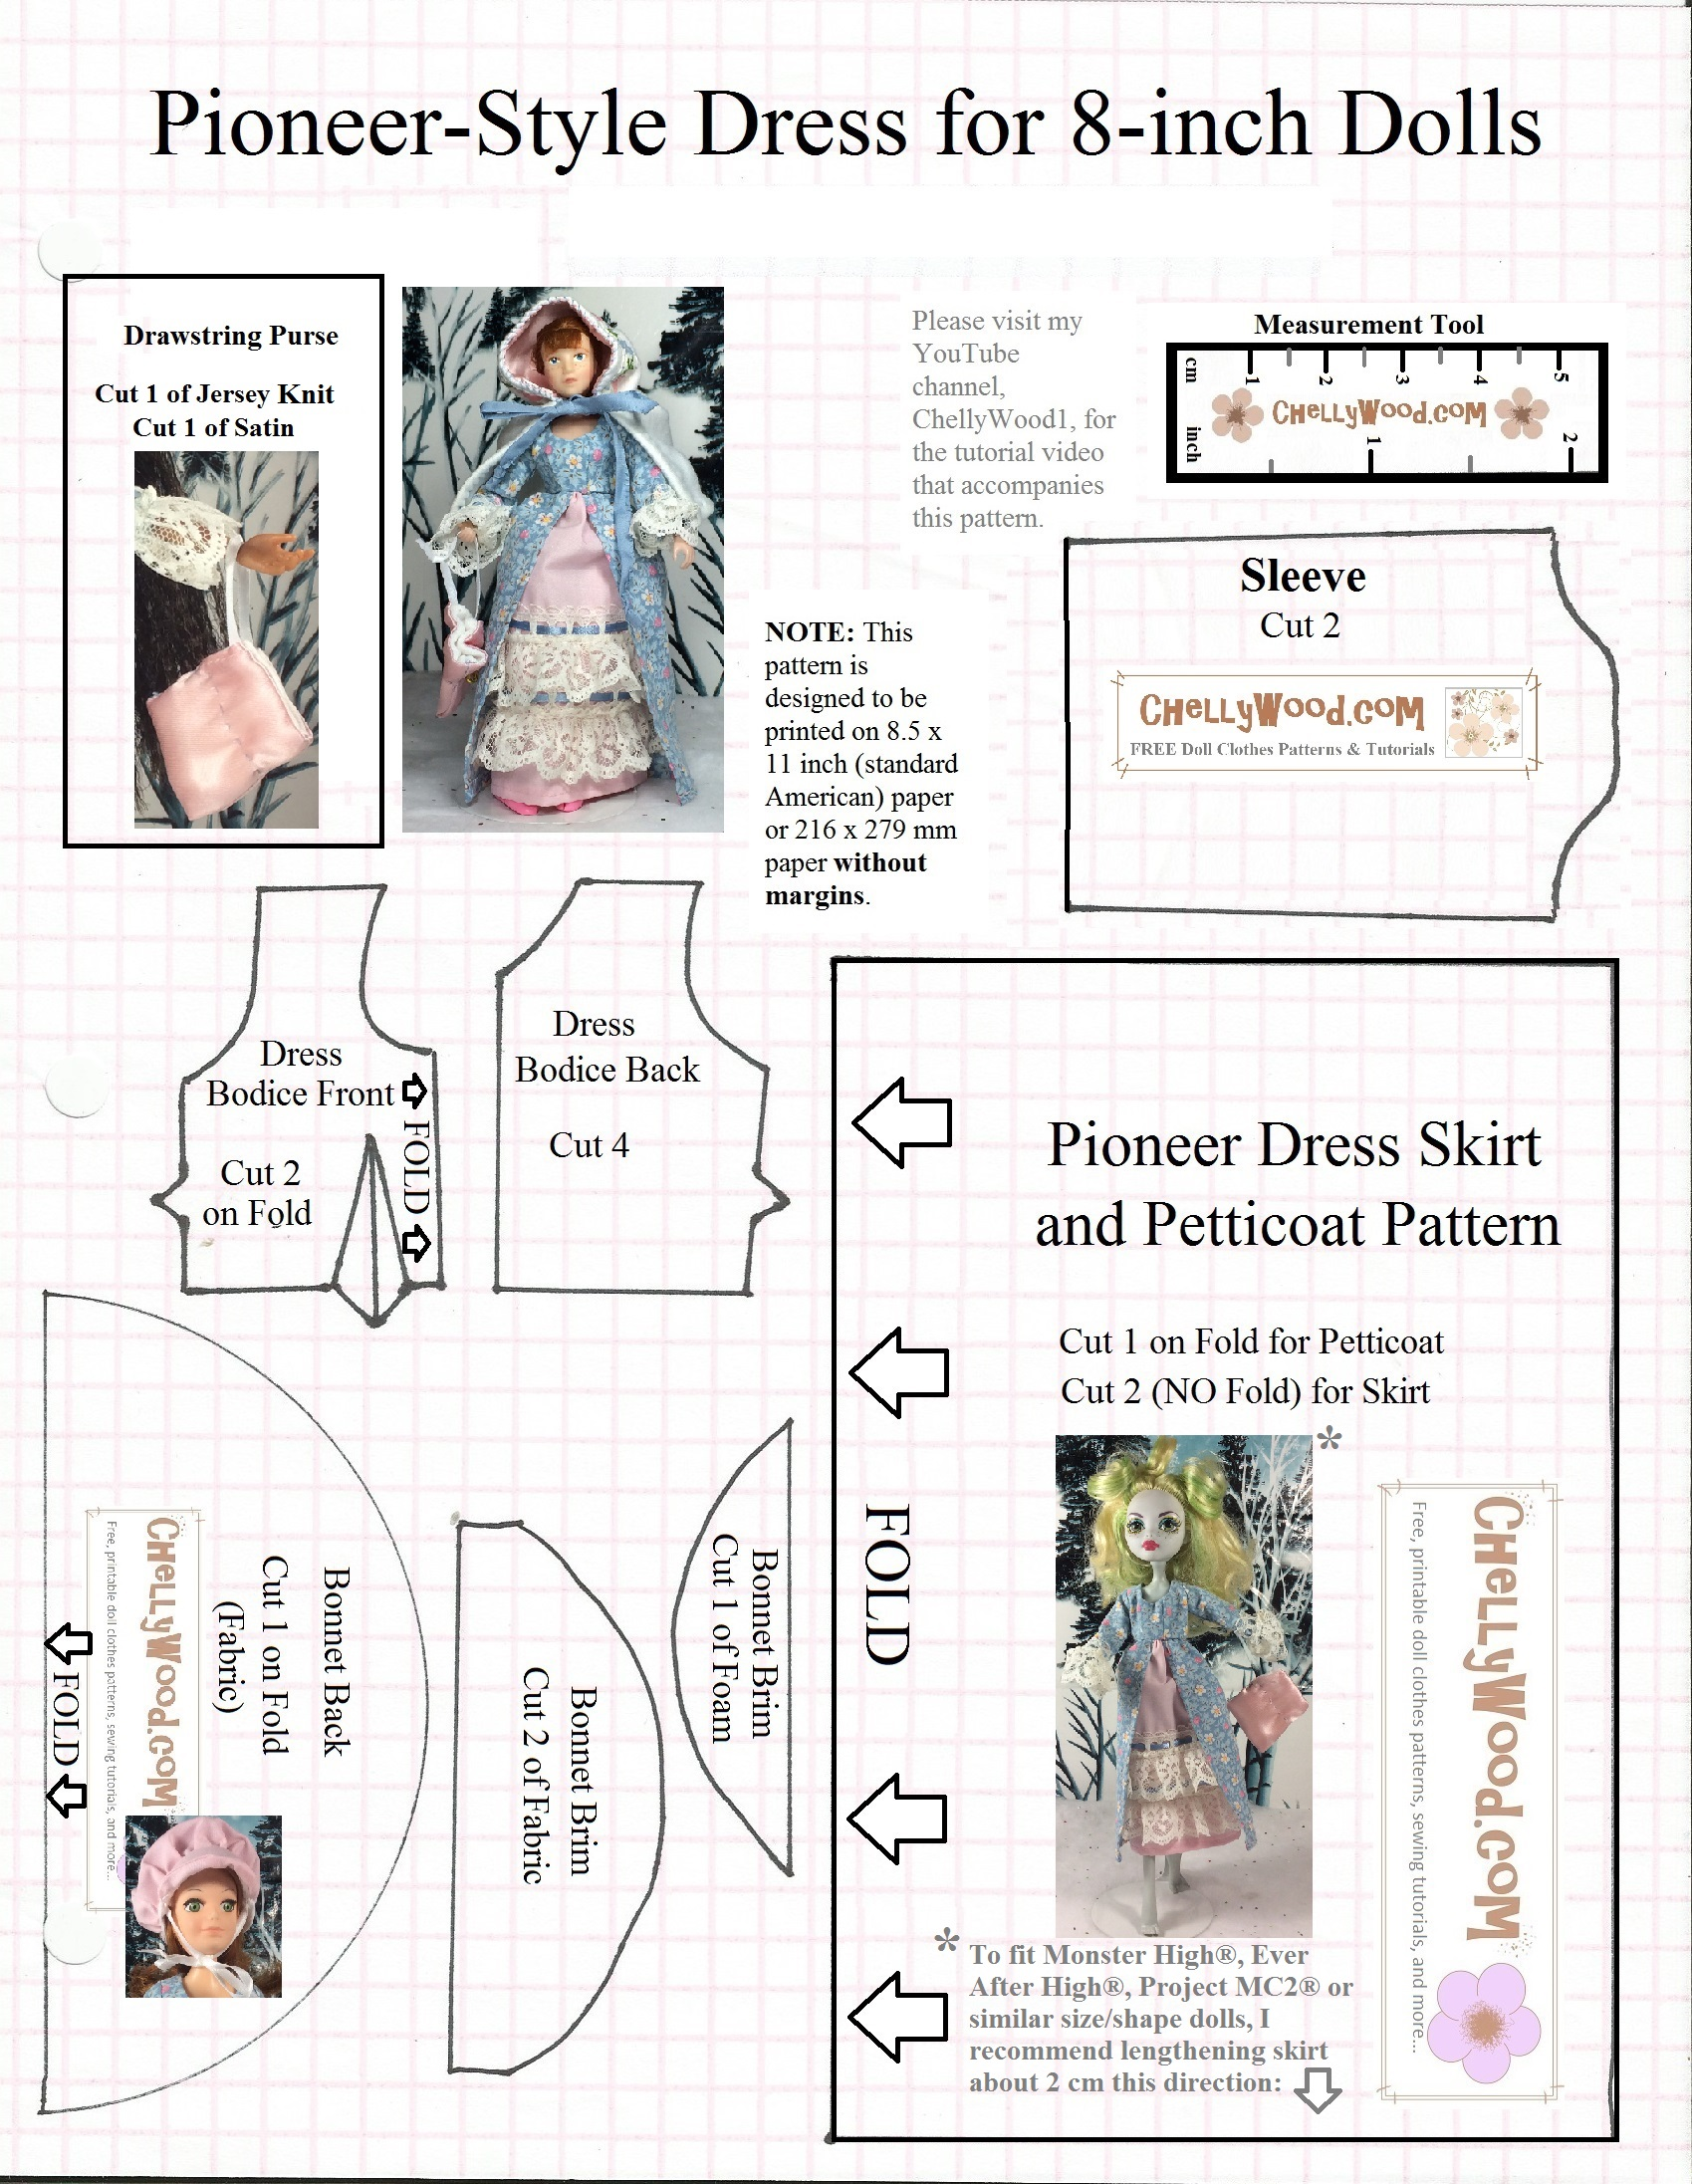 Everafterhigh Or Monsterhigh Clothes Sewing Patterns